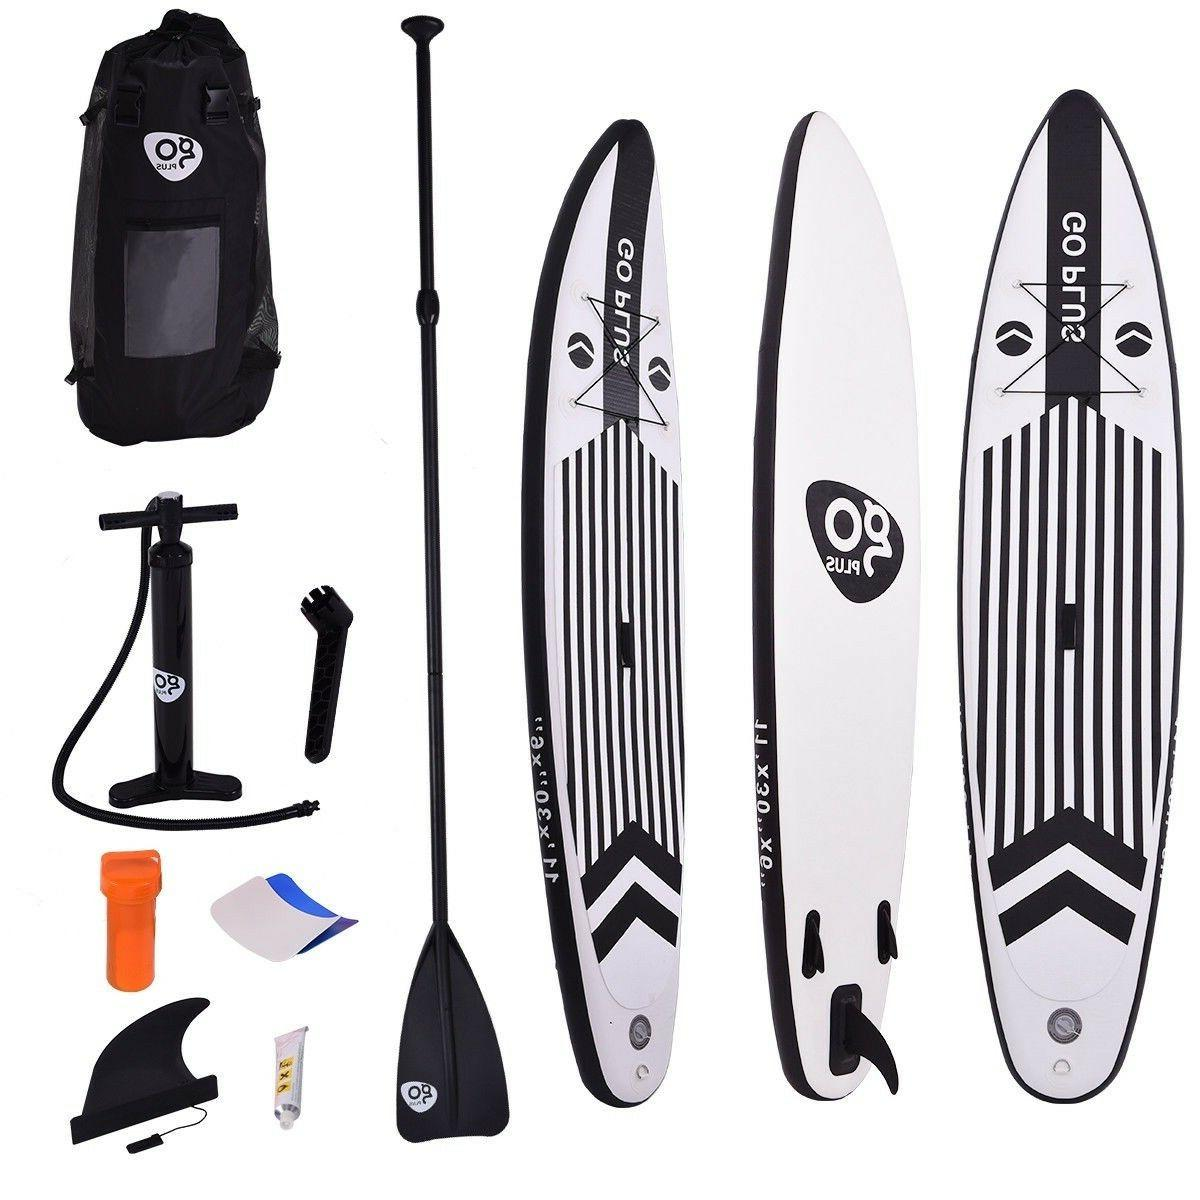 11 inflatable stand up paddle board w